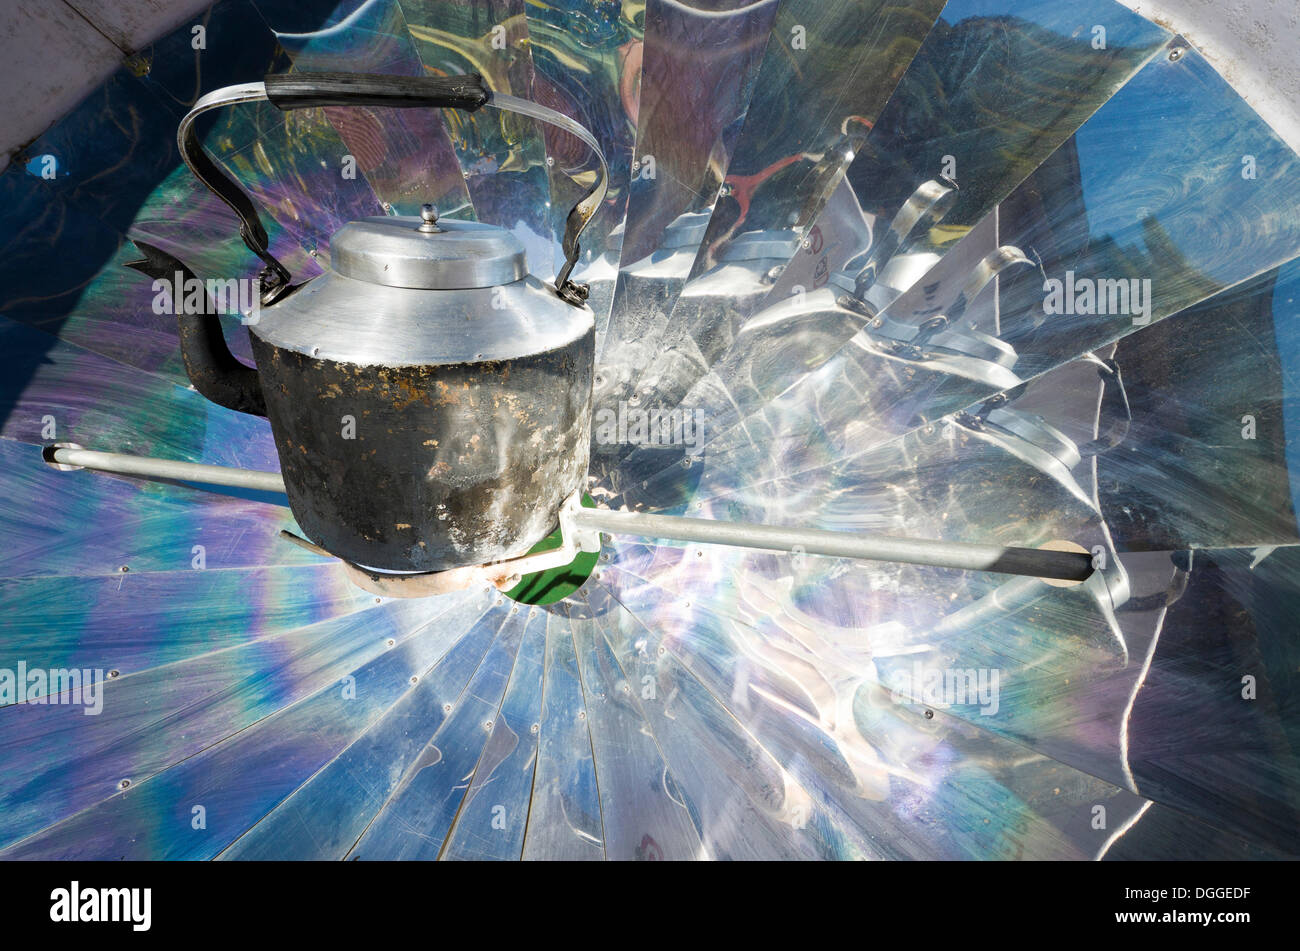 Cooking Kettles Stock Photos & Cooking Kettles Stock Images - Alamy